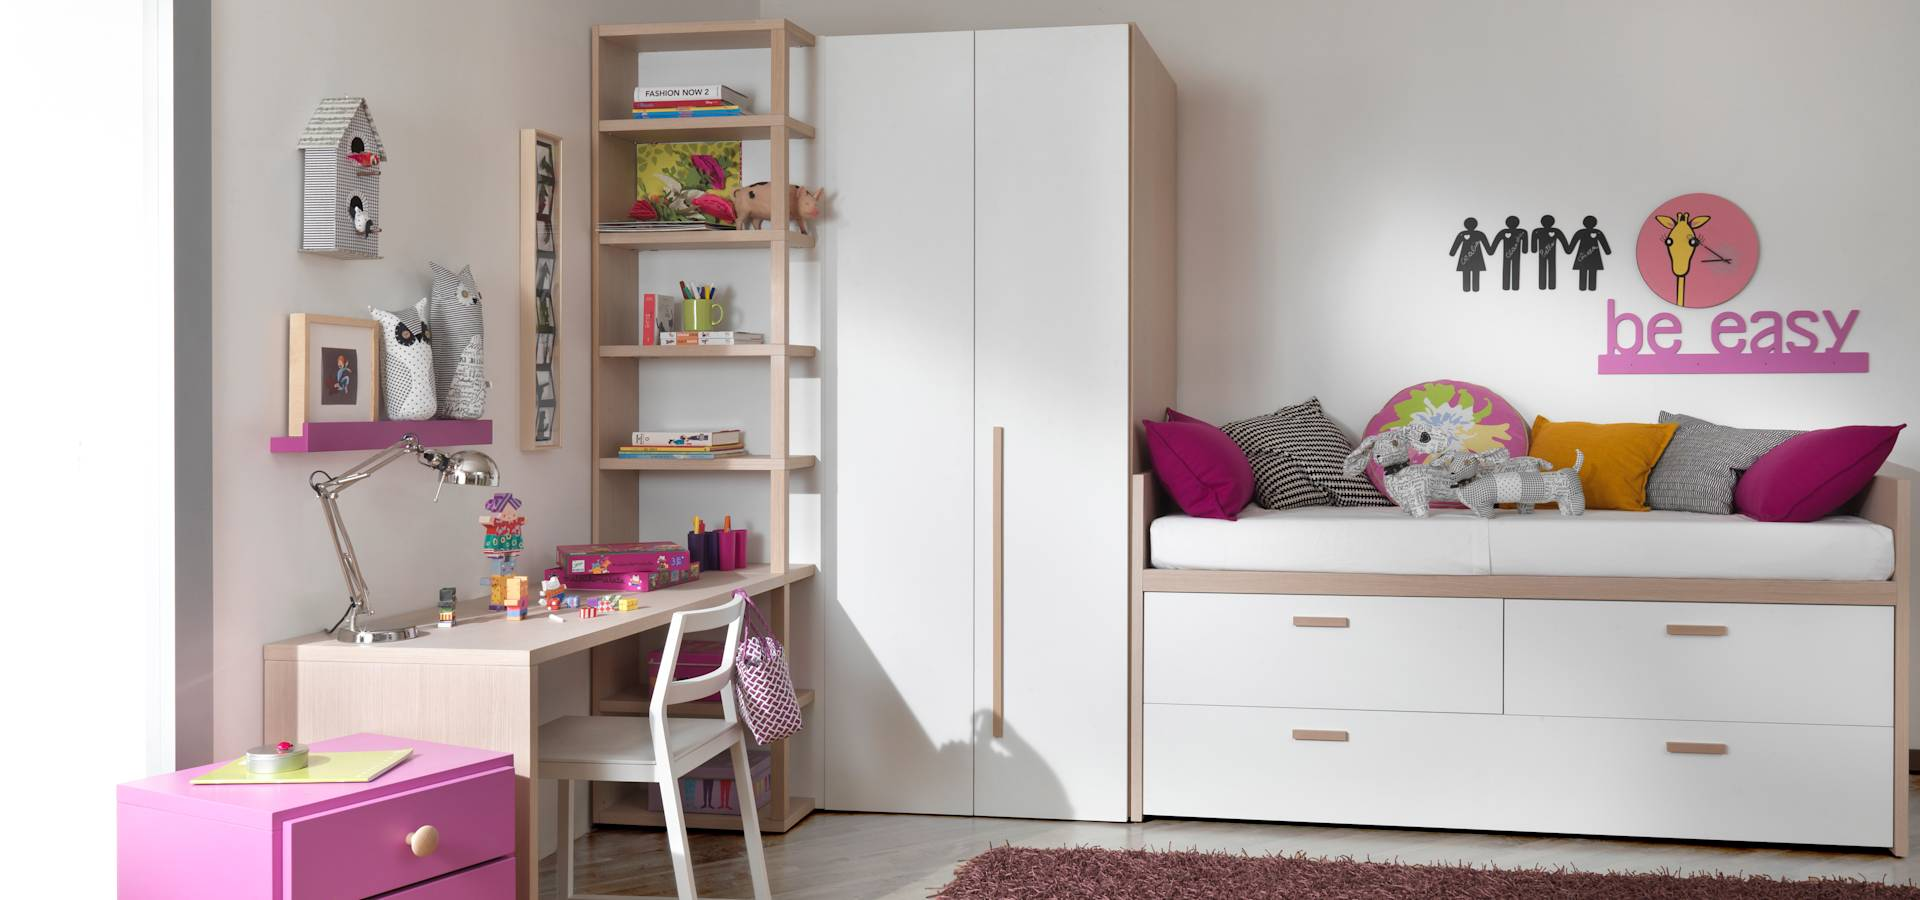 aussergew hnliche hochbetten von mobimio r ume f r. Black Bedroom Furniture Sets. Home Design Ideas